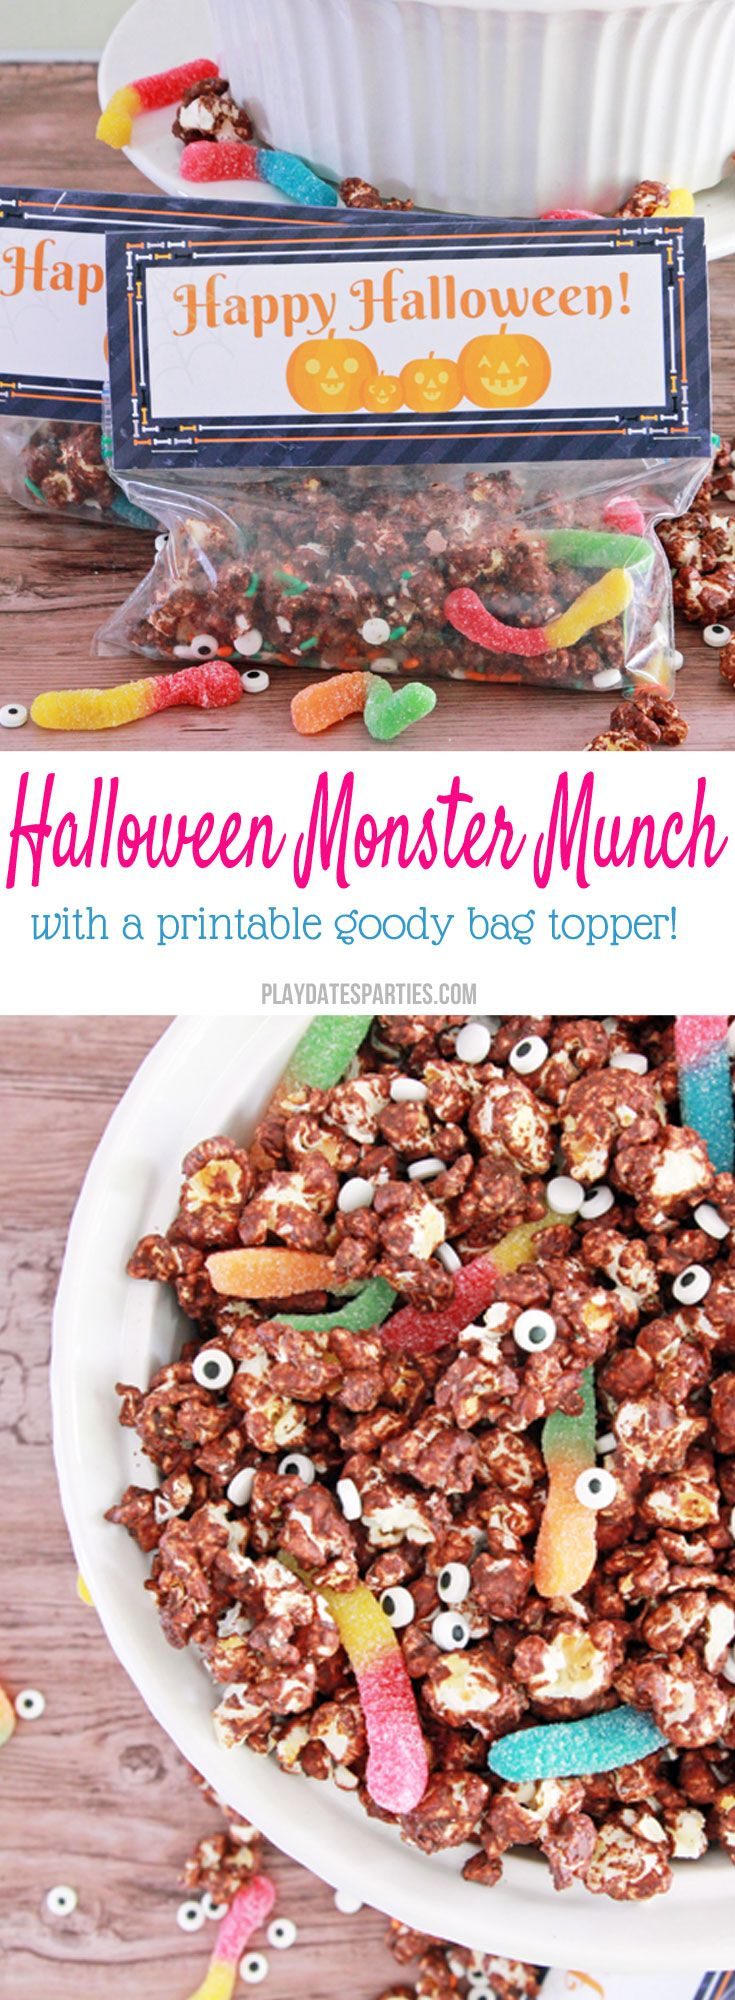 Halloween candy monster munch and printable treat toppers | # InspirationSpotlight